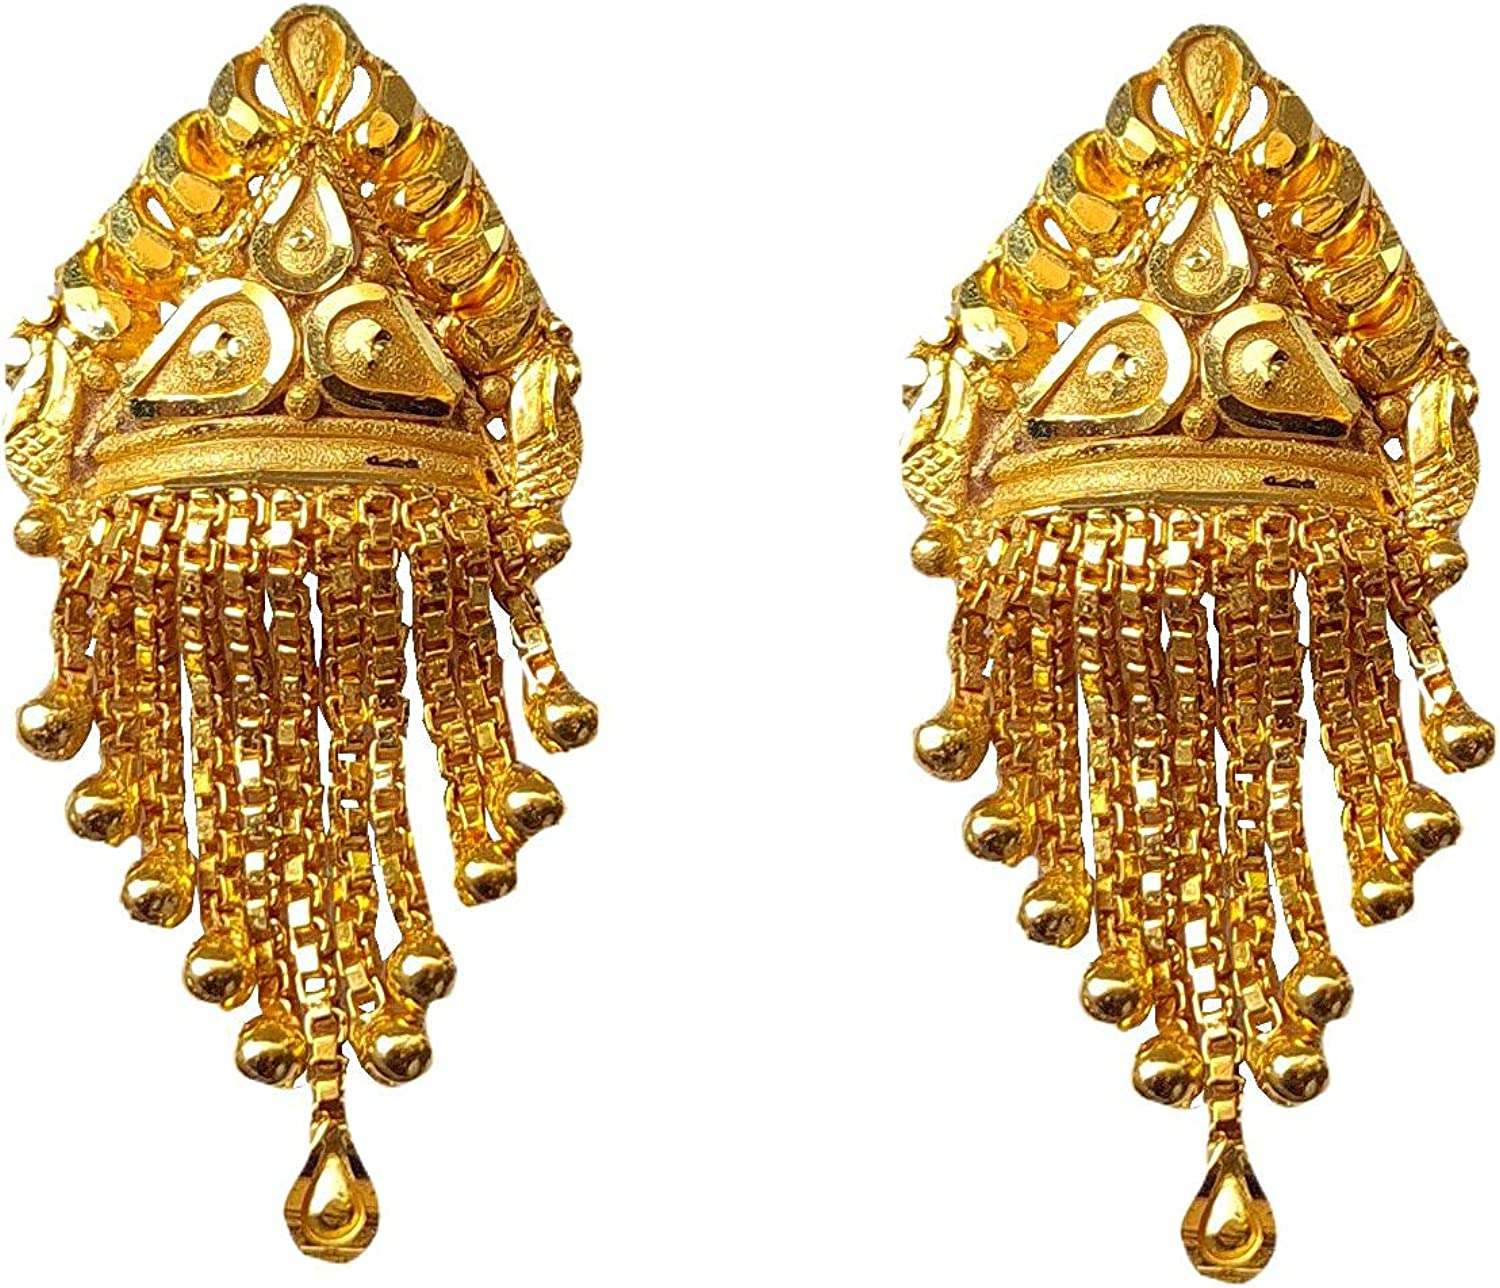 Certified Solid 22K/18K Yellow Fine Gold Elegant Chain Design Earrings Available In Both 22 Carat And 18 Carat Fine Gold, For Women,Girls,Kids,Gifts,Bridal,Wedding,Engagement & Celebrations